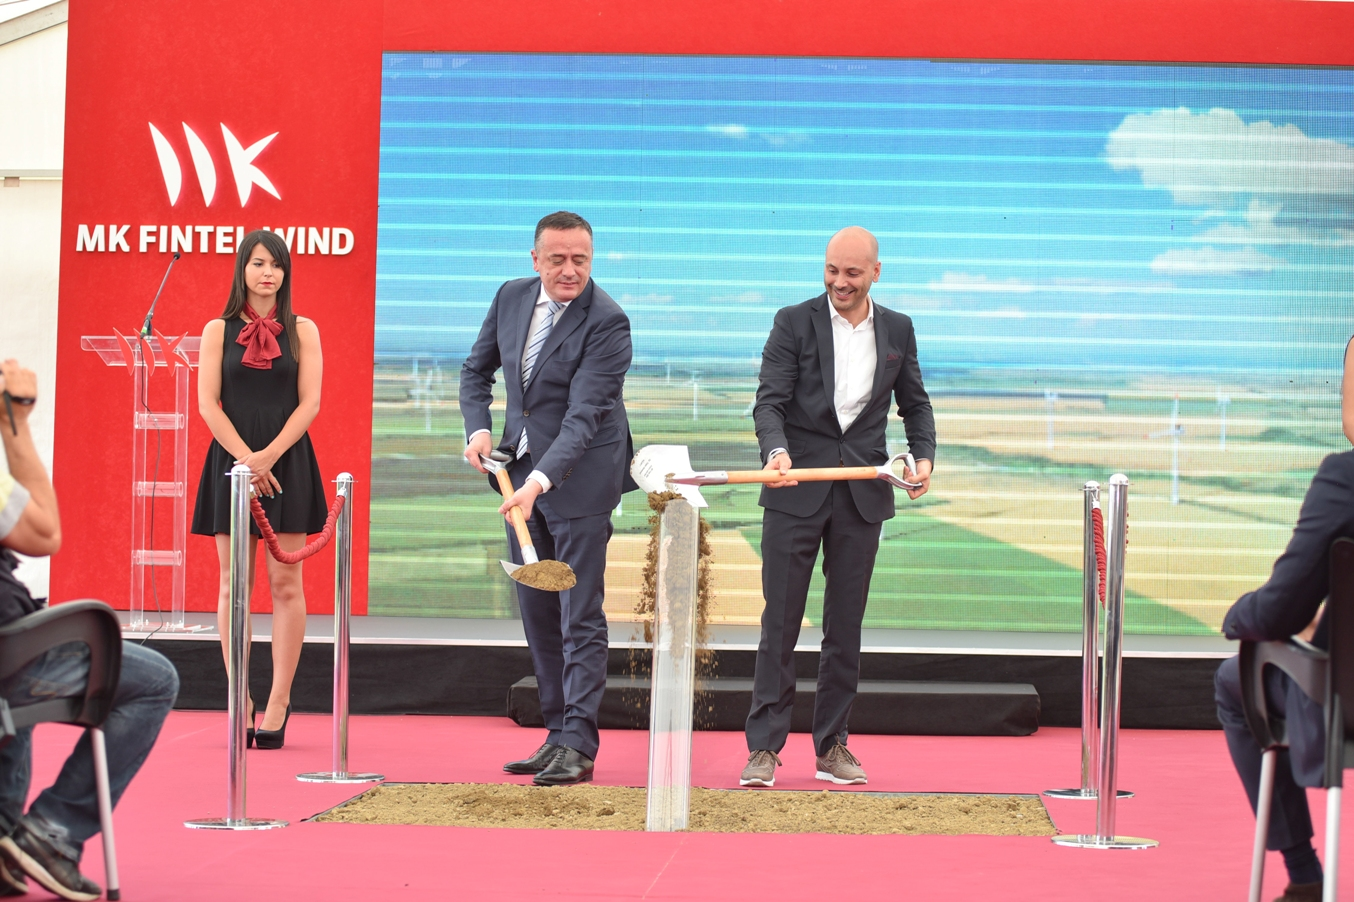 Construction of the wind farm Košava near Vršac has started - The first phase of the project worth 124m EUR